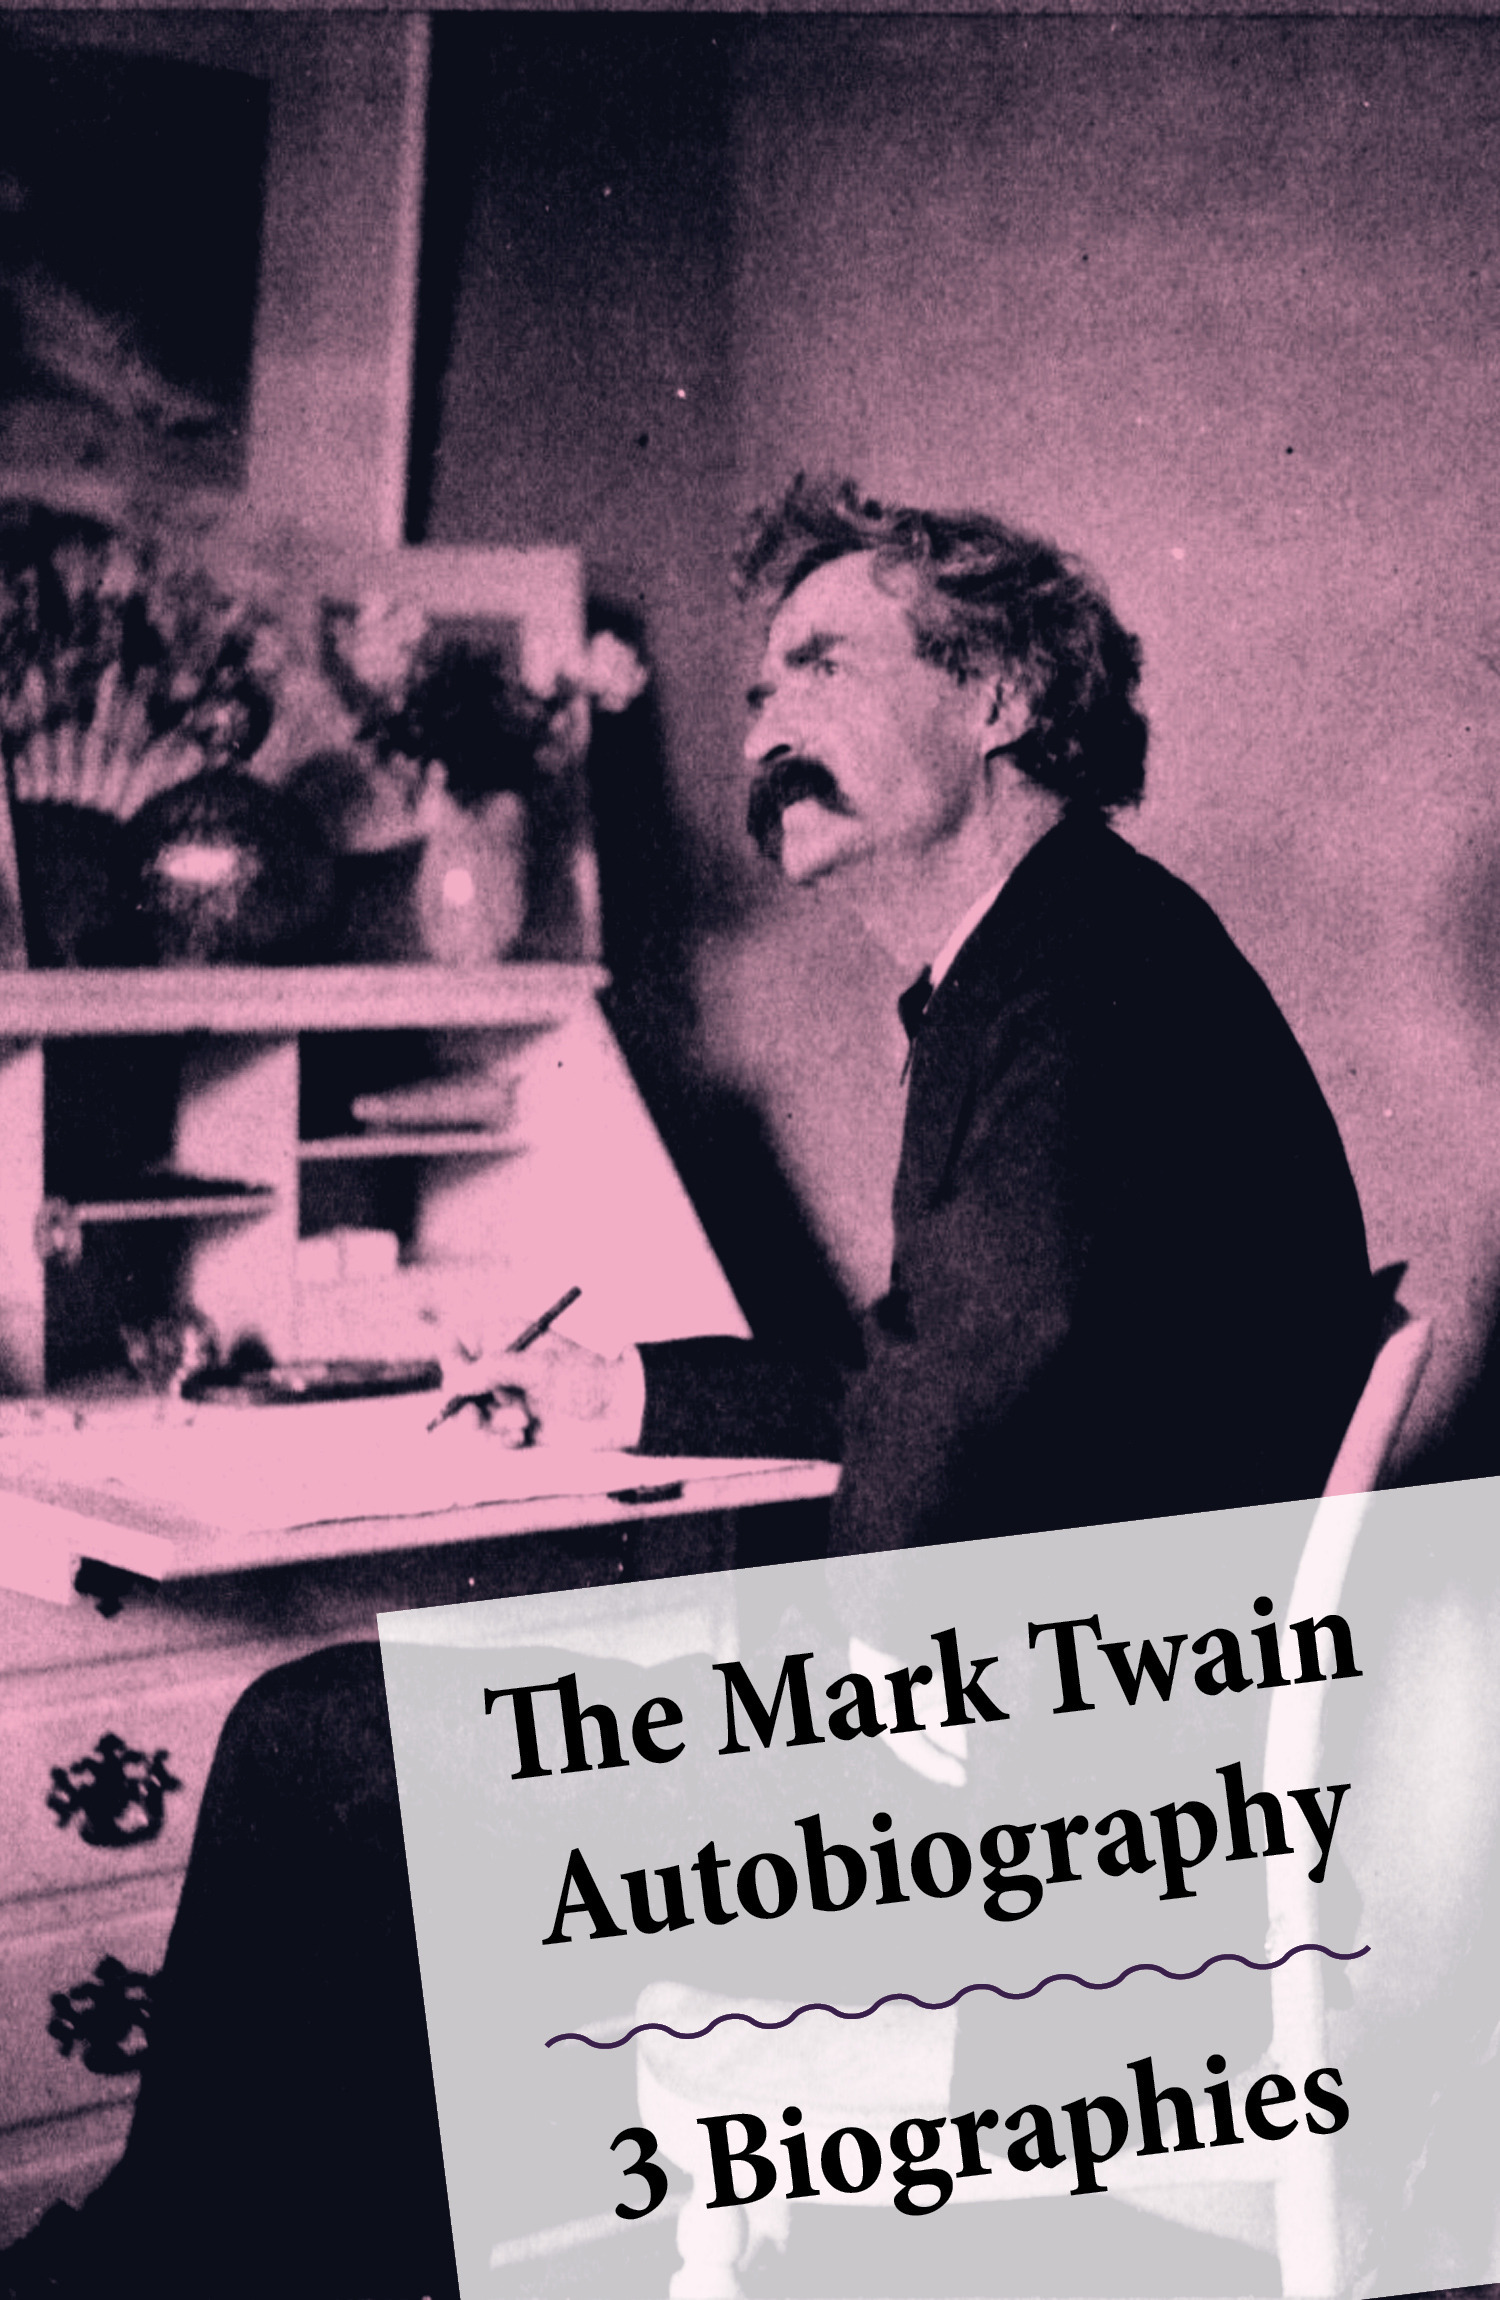 The Mark Twain Autobiography + 3 Biographies